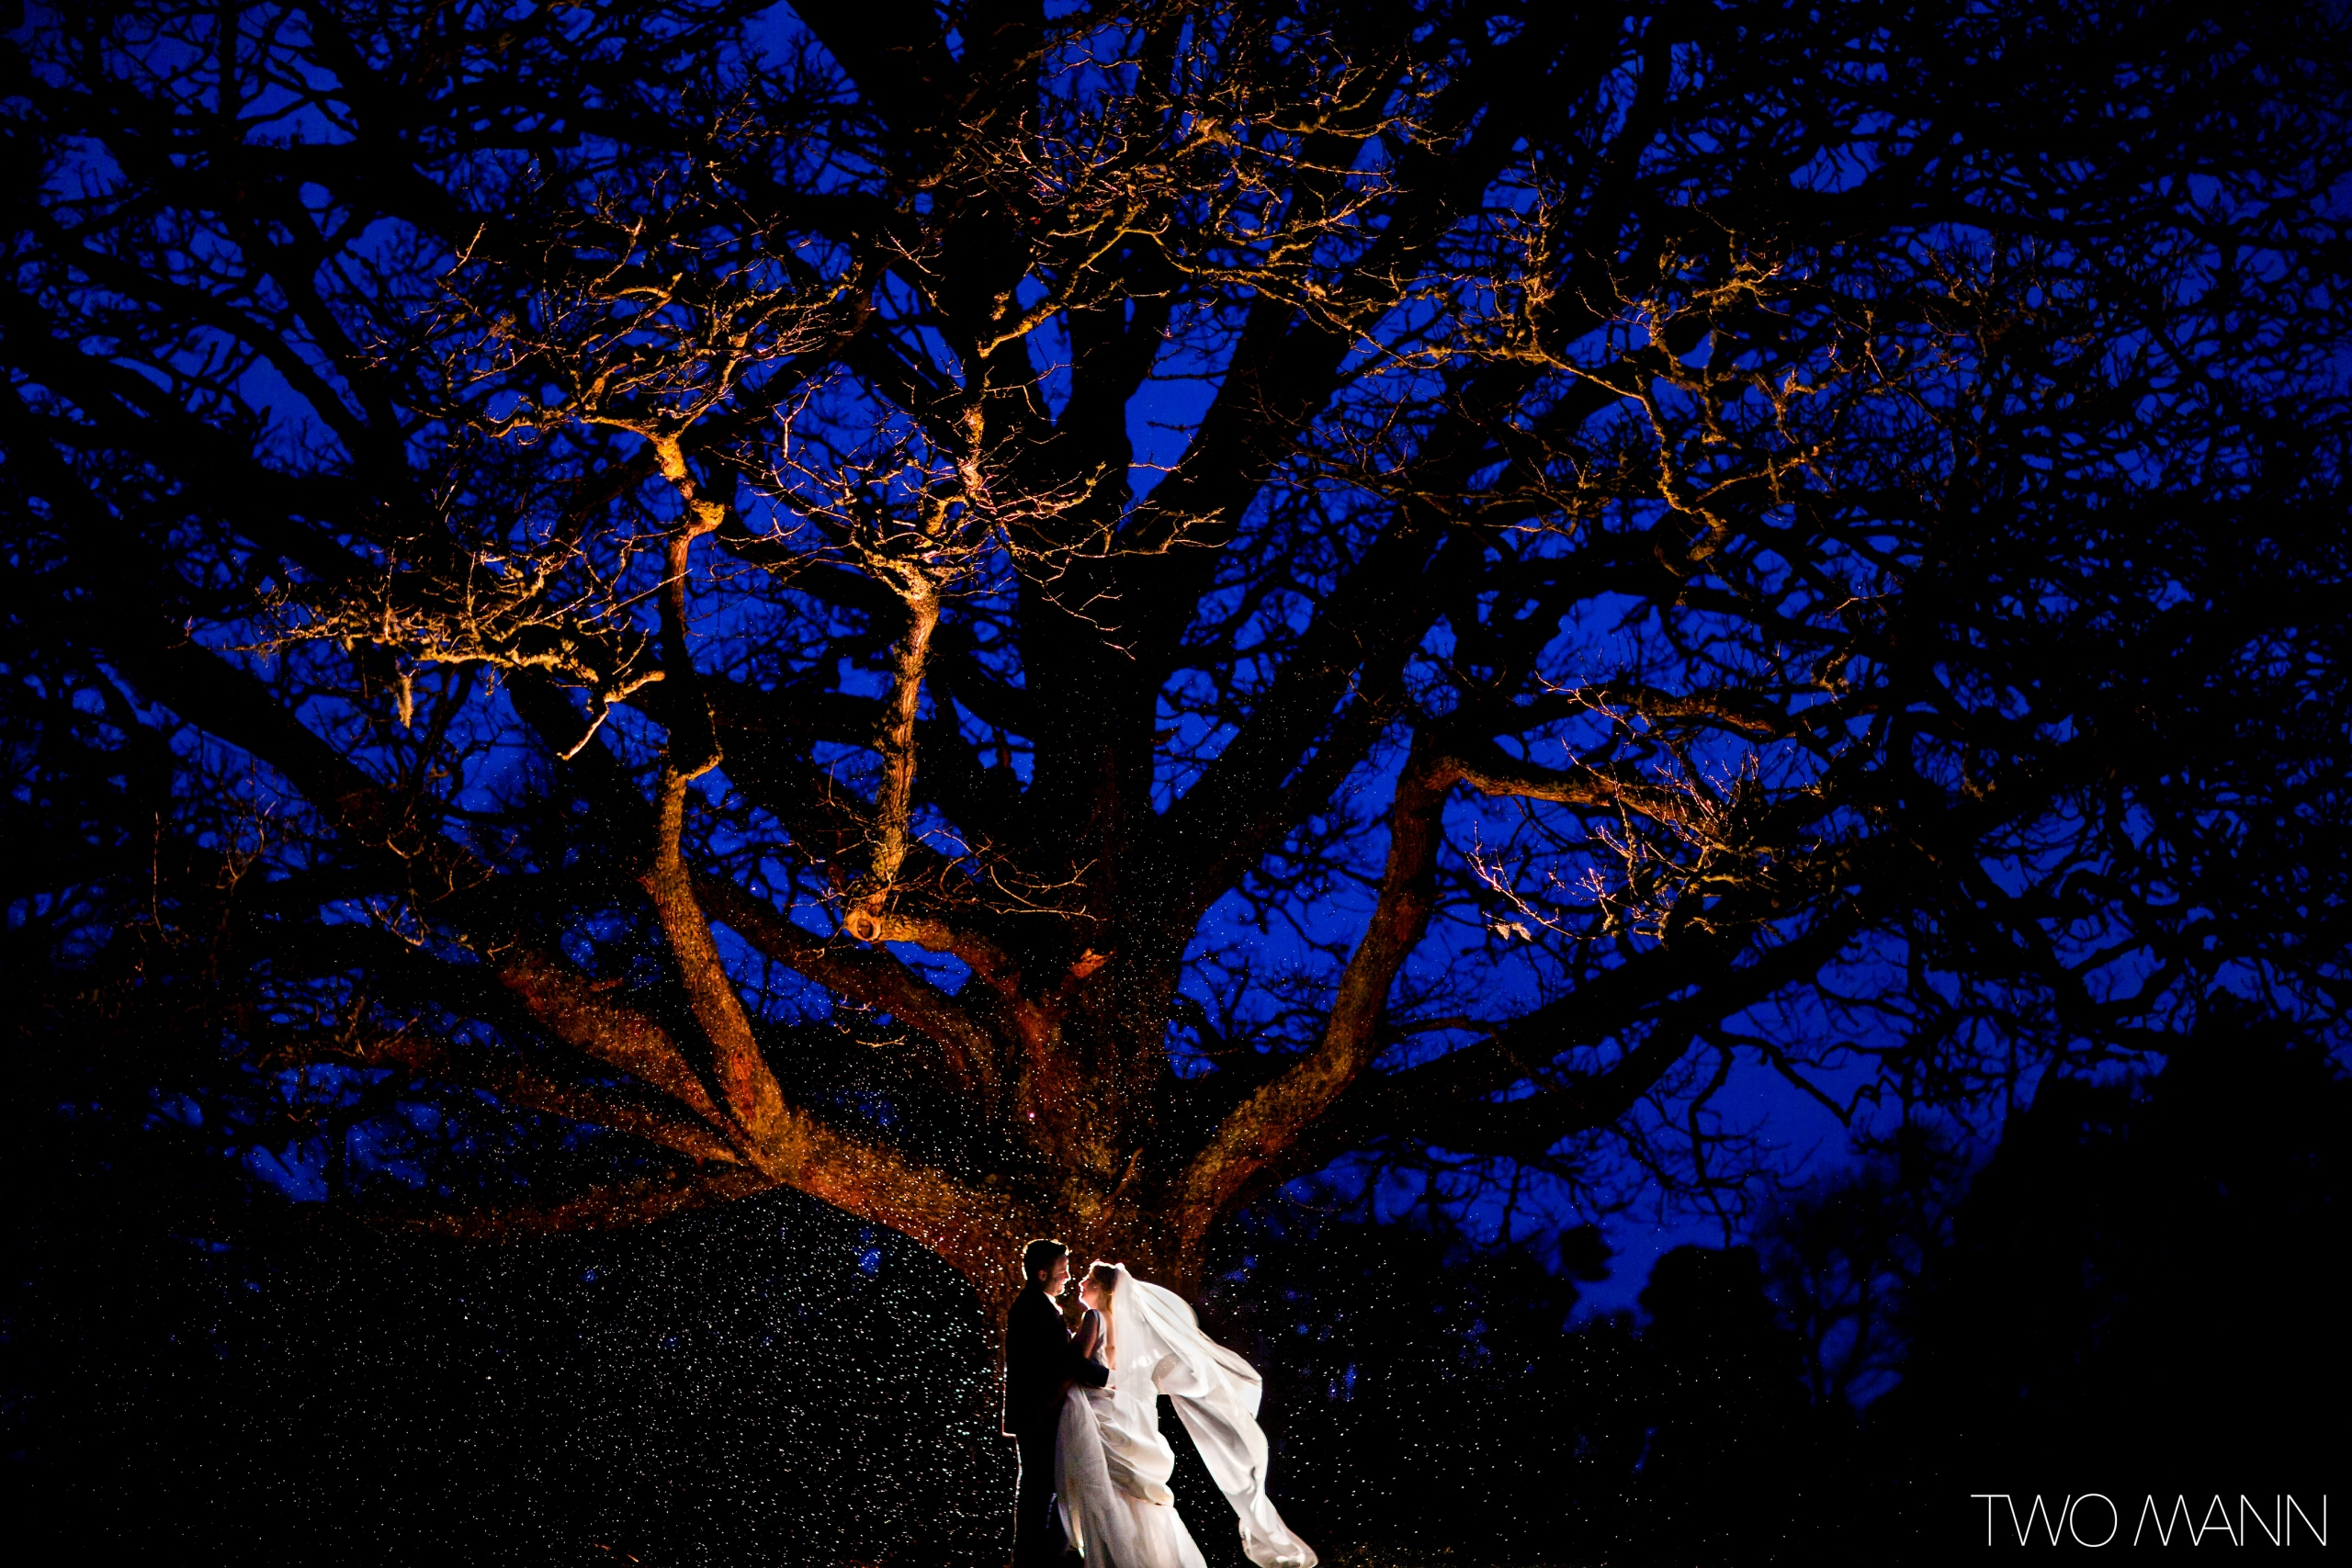 bride and groom embracing under a tree at night